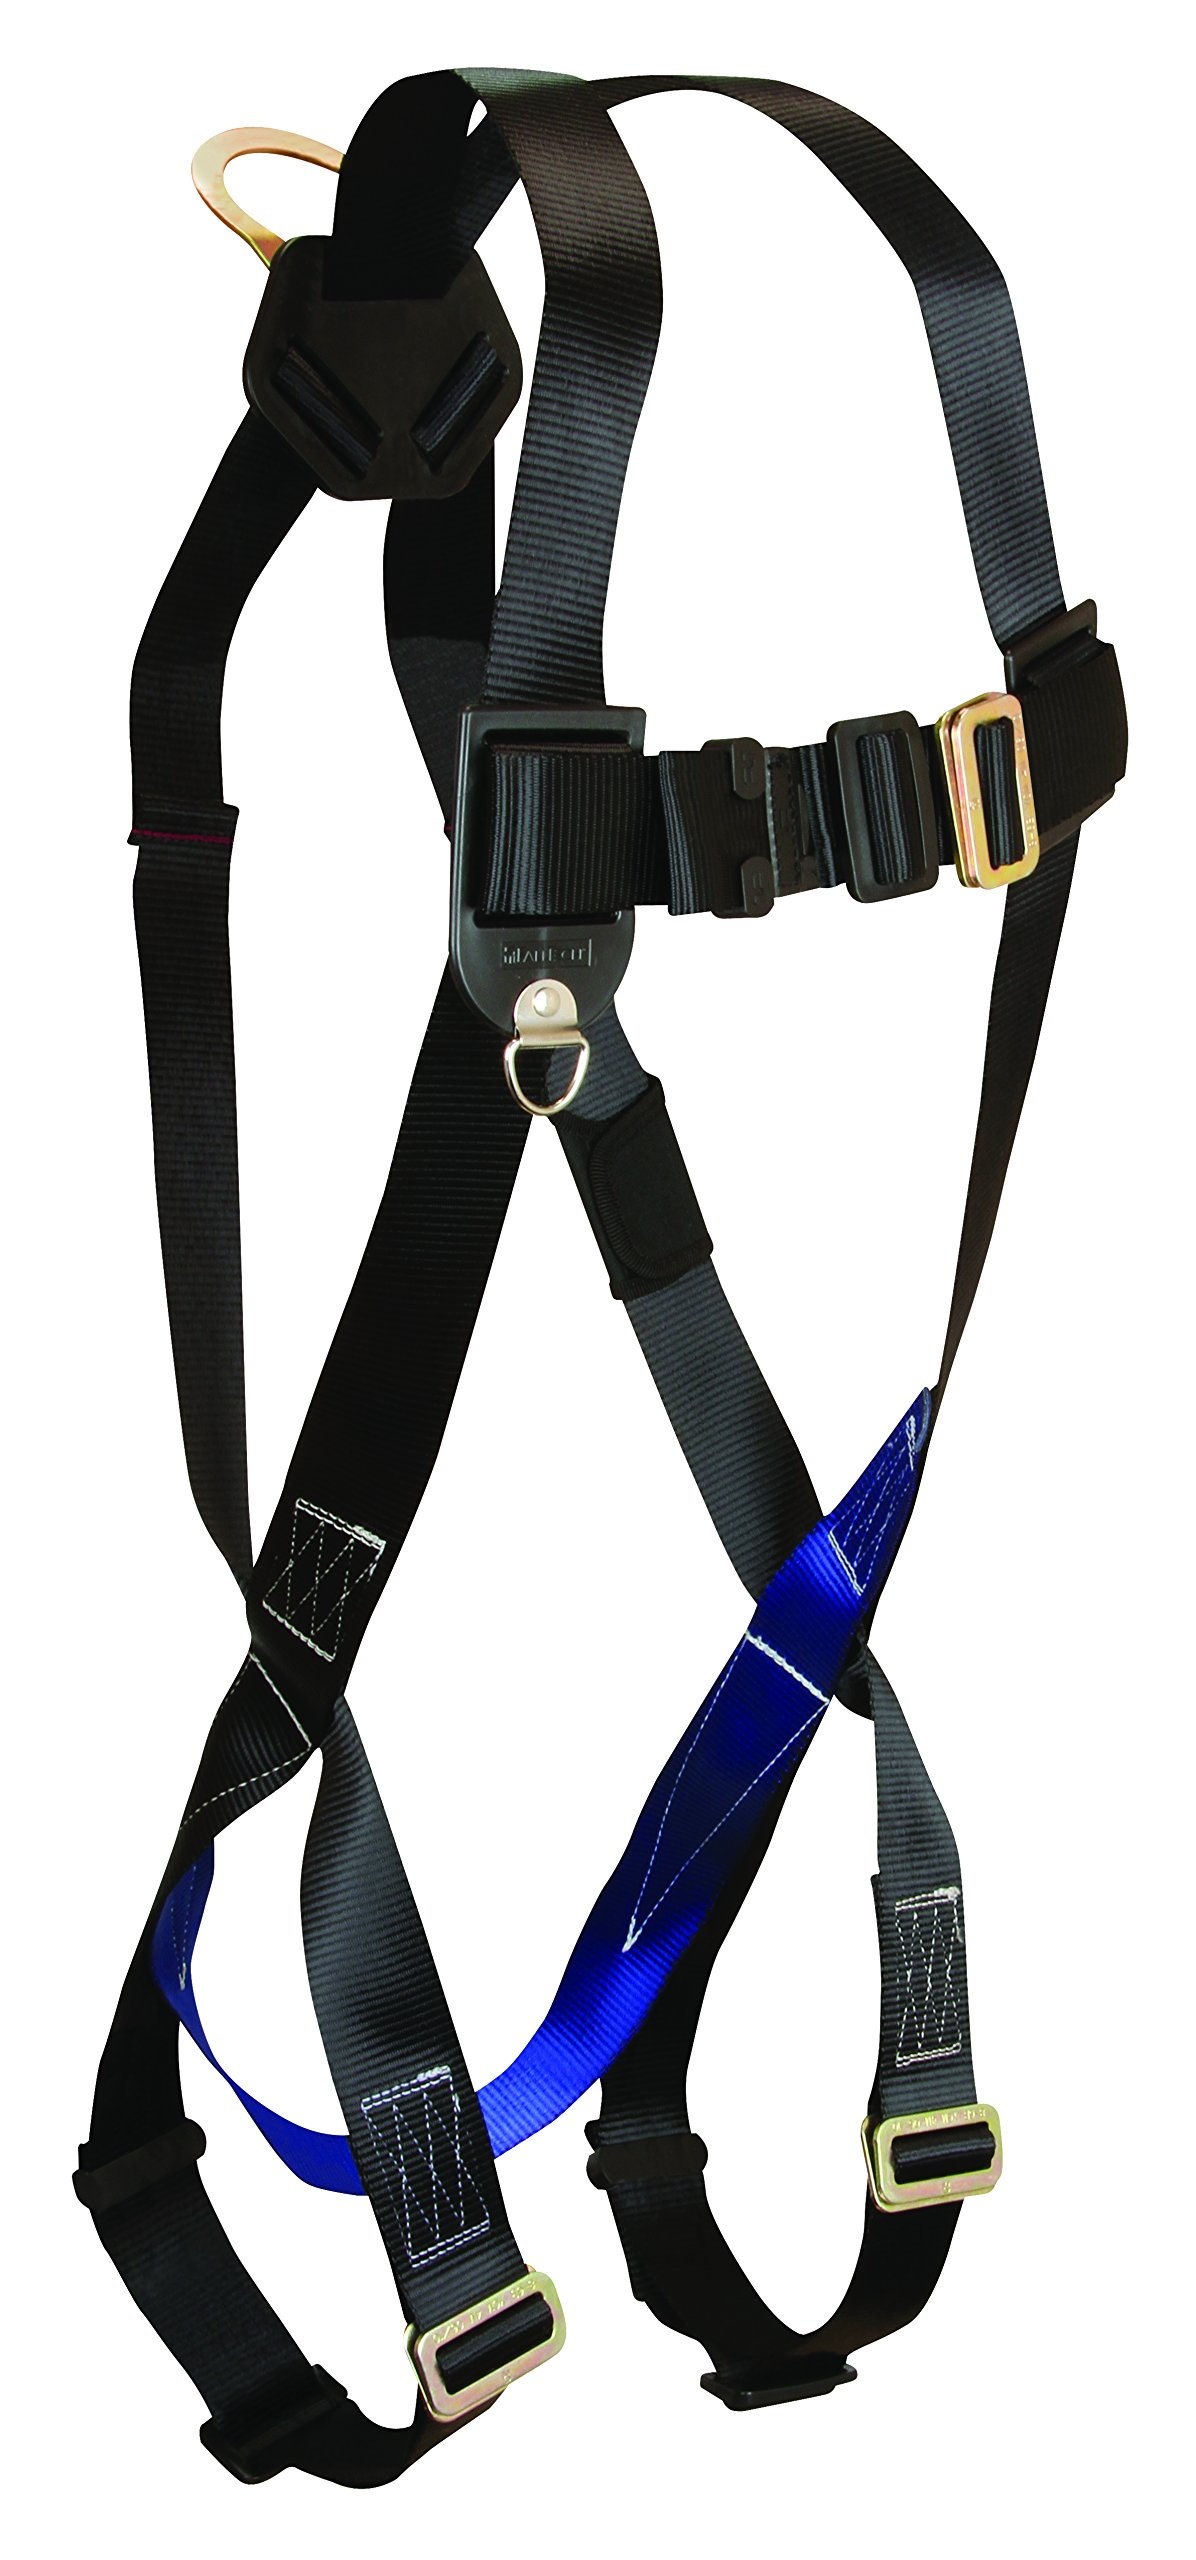 FallTech 7007 FT Basic Full Body Harness with 1 D-Ring and Mating Buckle Leg Straps, Universal Fit